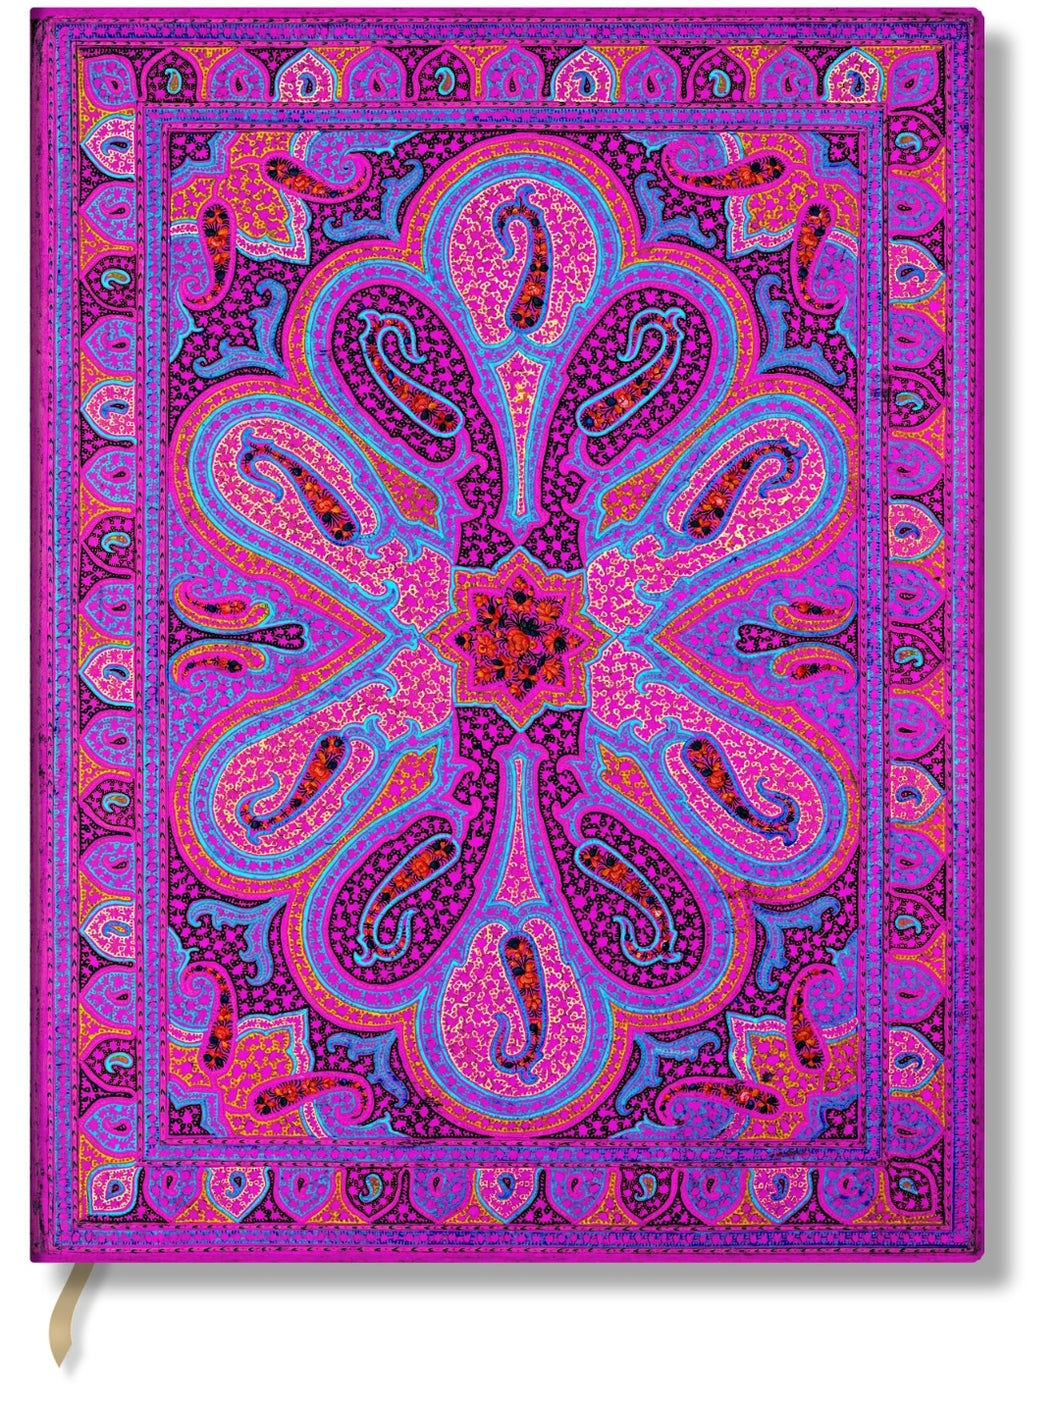 PAPERBANKS JOURNAL - BUKHARA - ADINA - HARDCOVER - ULTRA - LINED